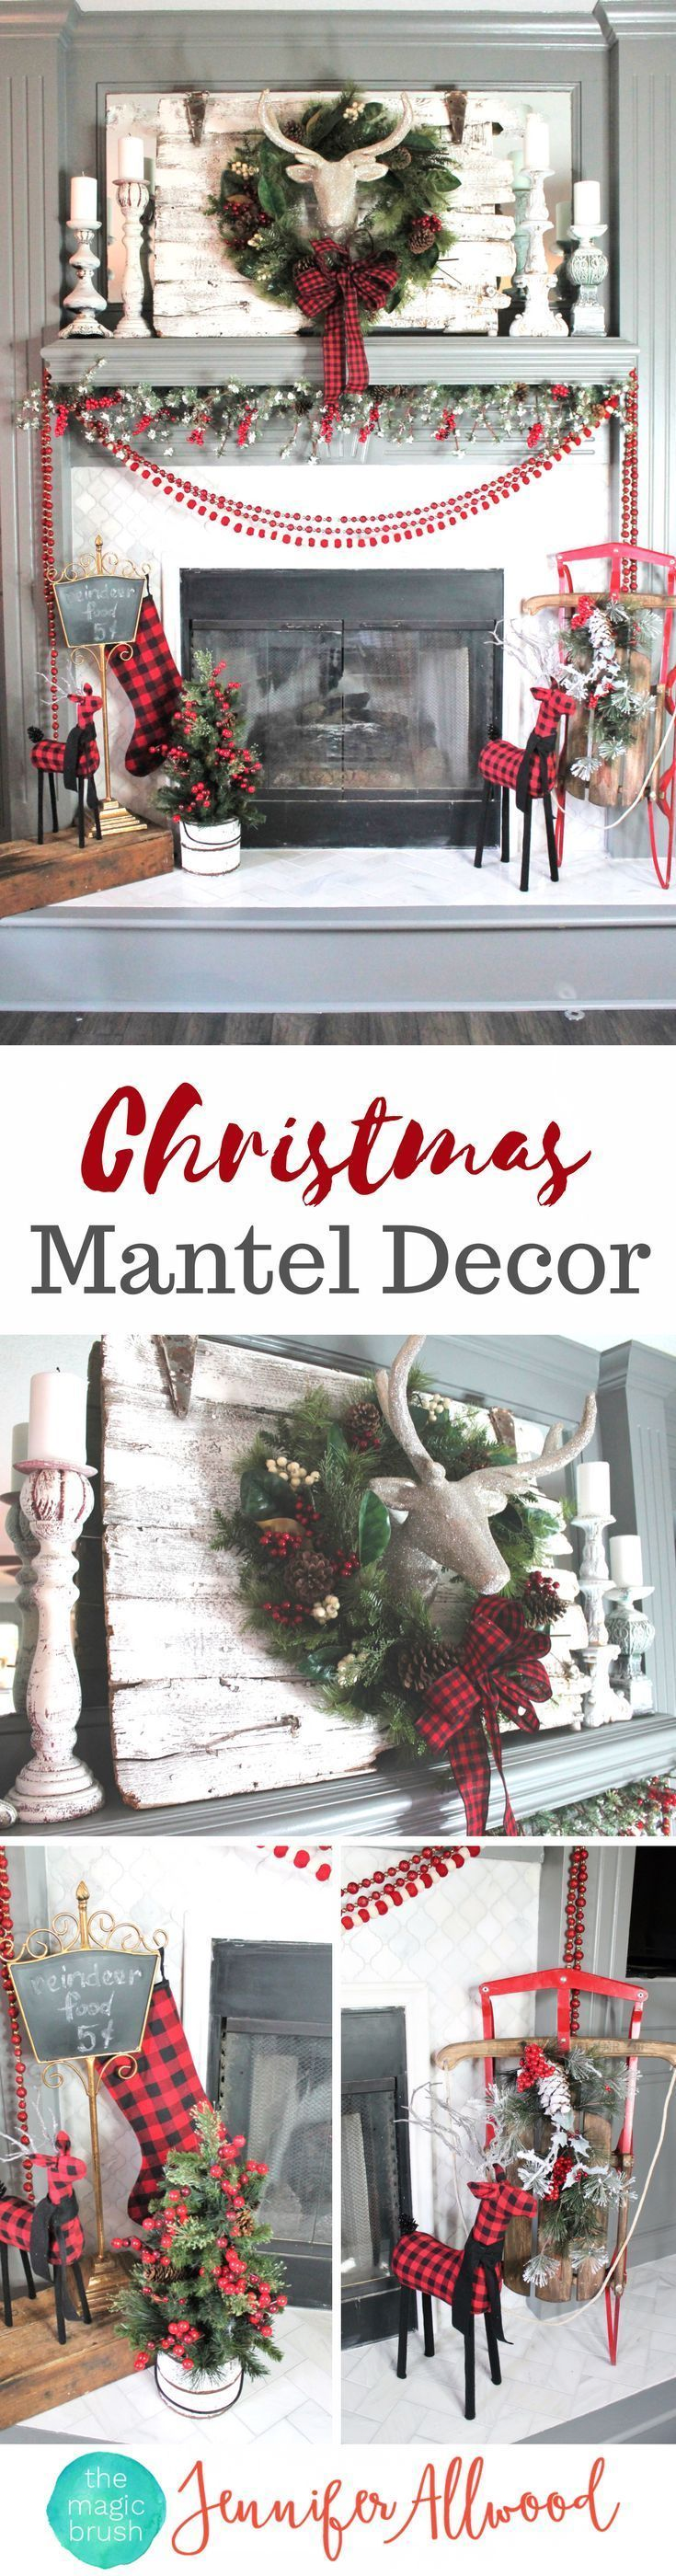 How to's : Christmas Mantel Decorations and Ideas | Magic Brush | Christmas Decor Ideas | Christmas Decorations with Glitter Dear Head and Christmas Tartan & Buffalo Check